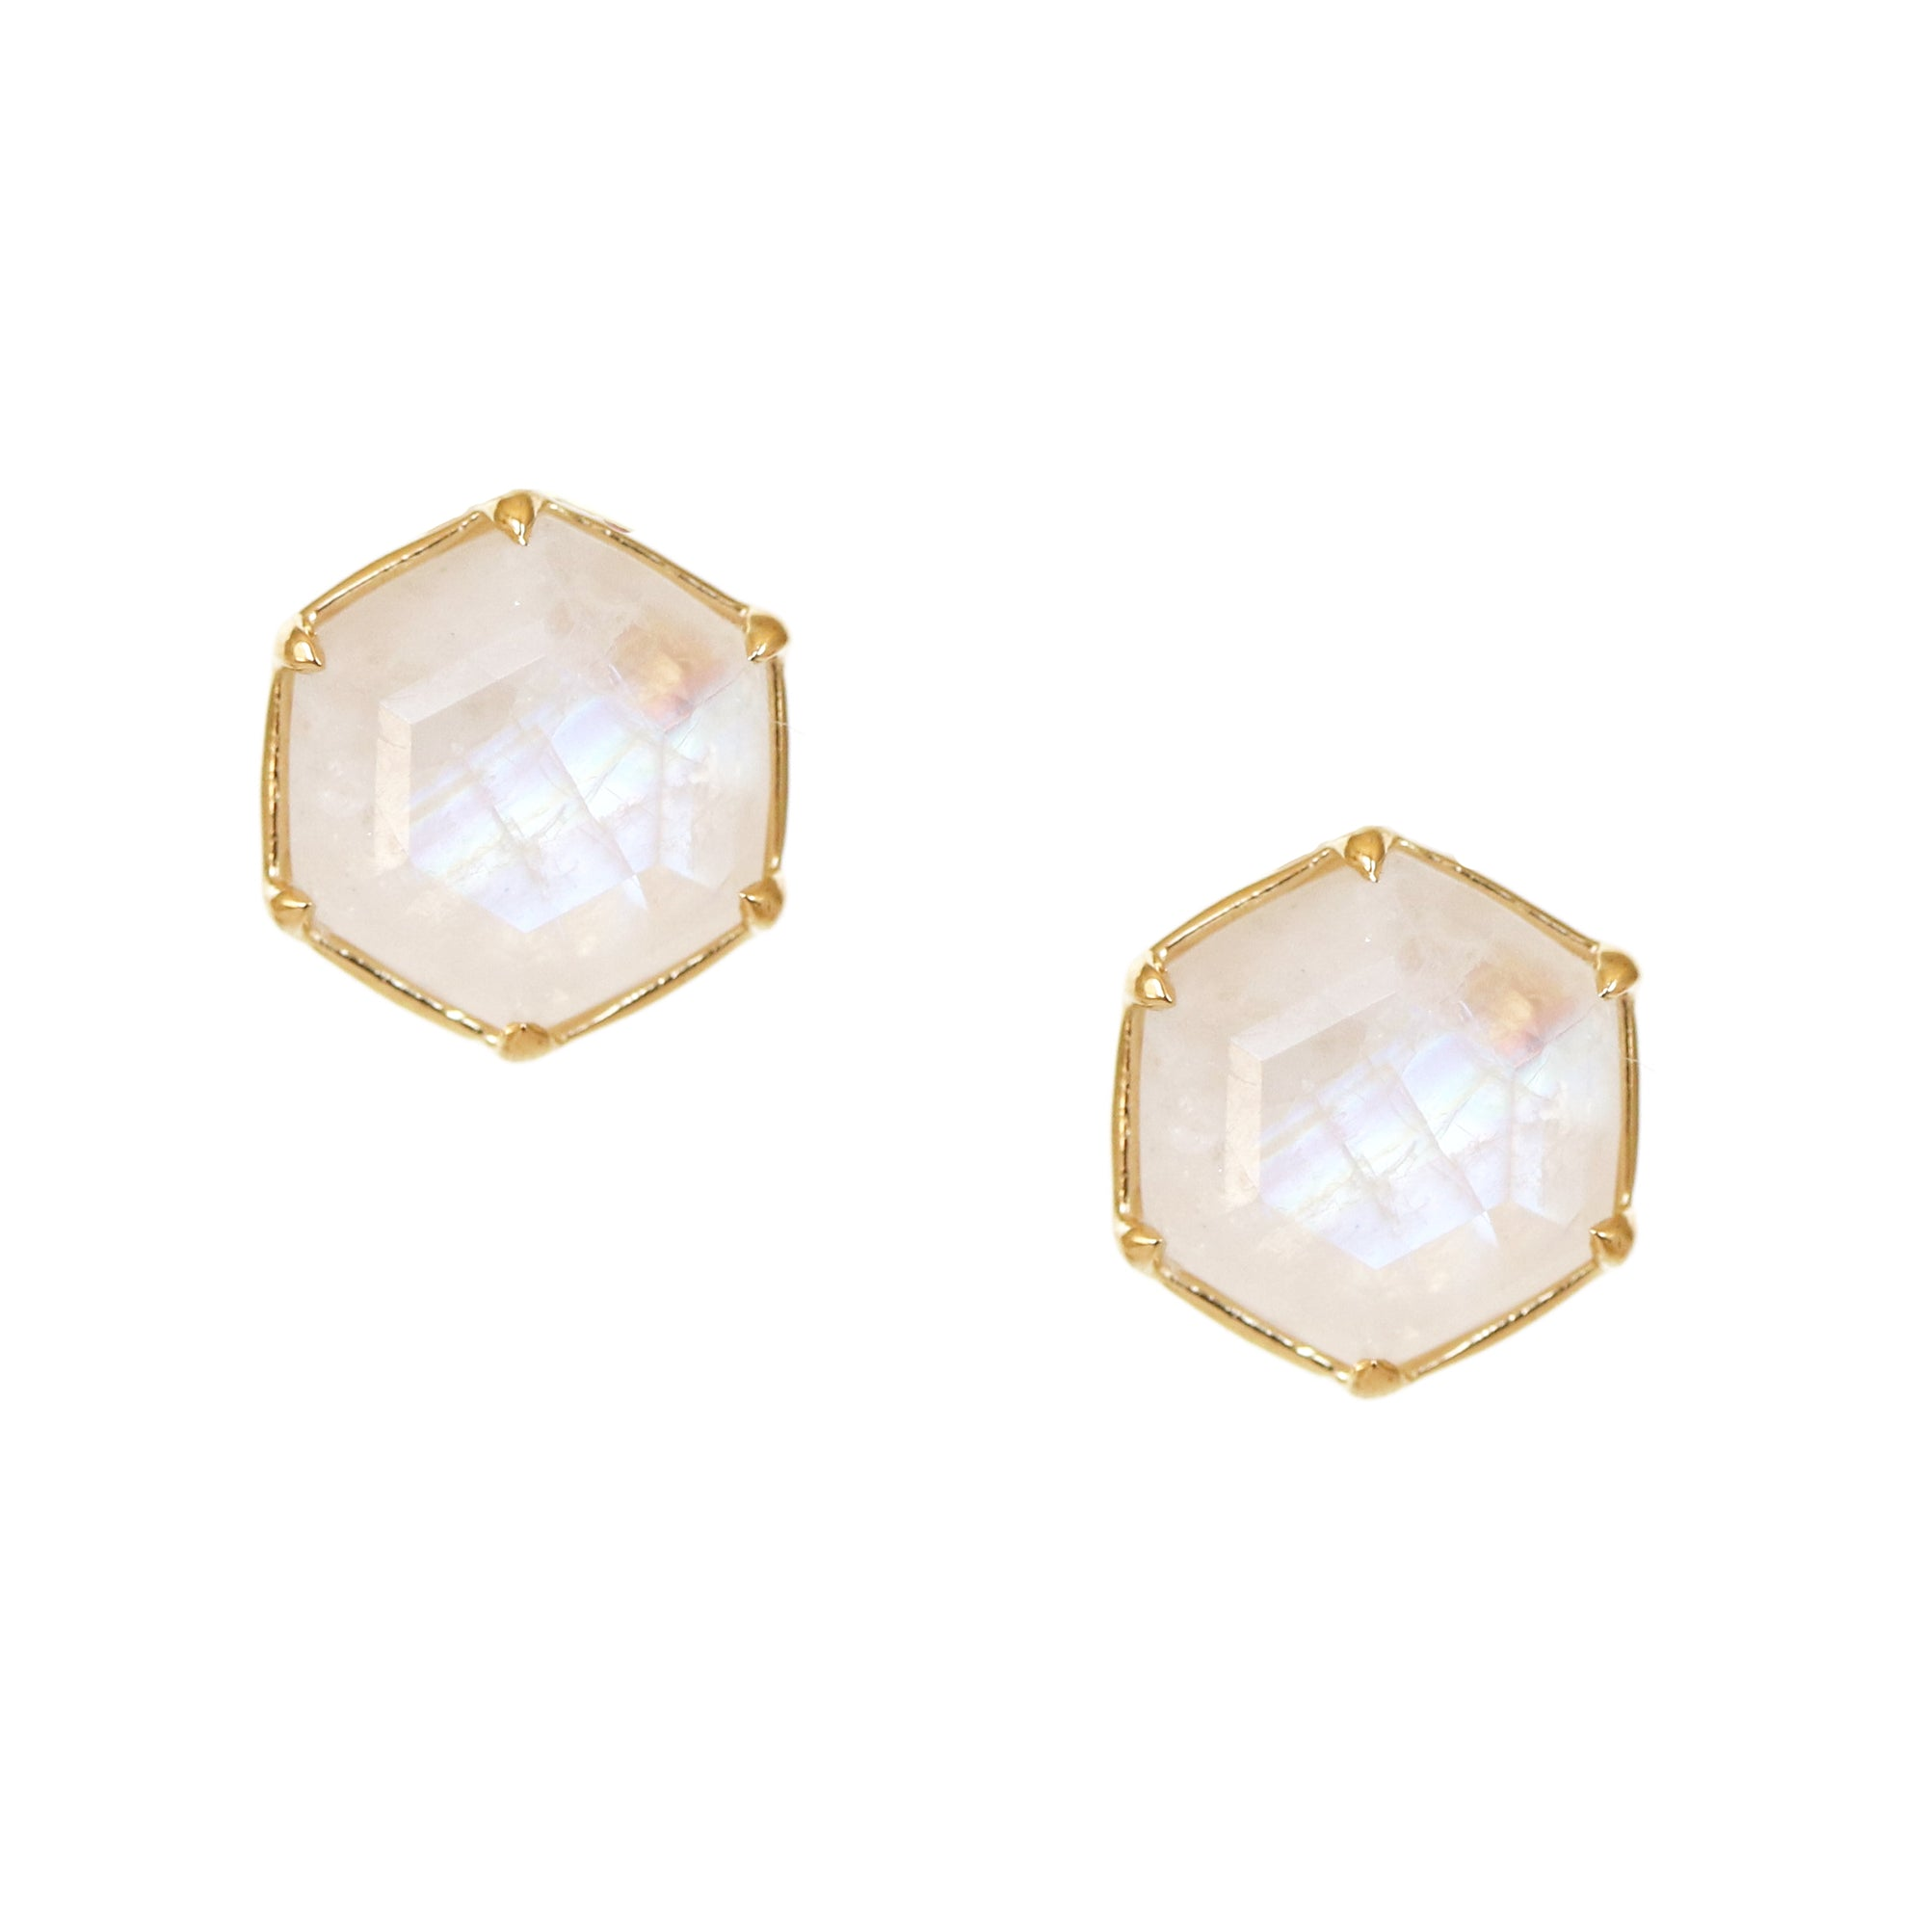 GRACE HEXAGON STUD EARRINGS - RAINBOW MOONSTONE & GOLD